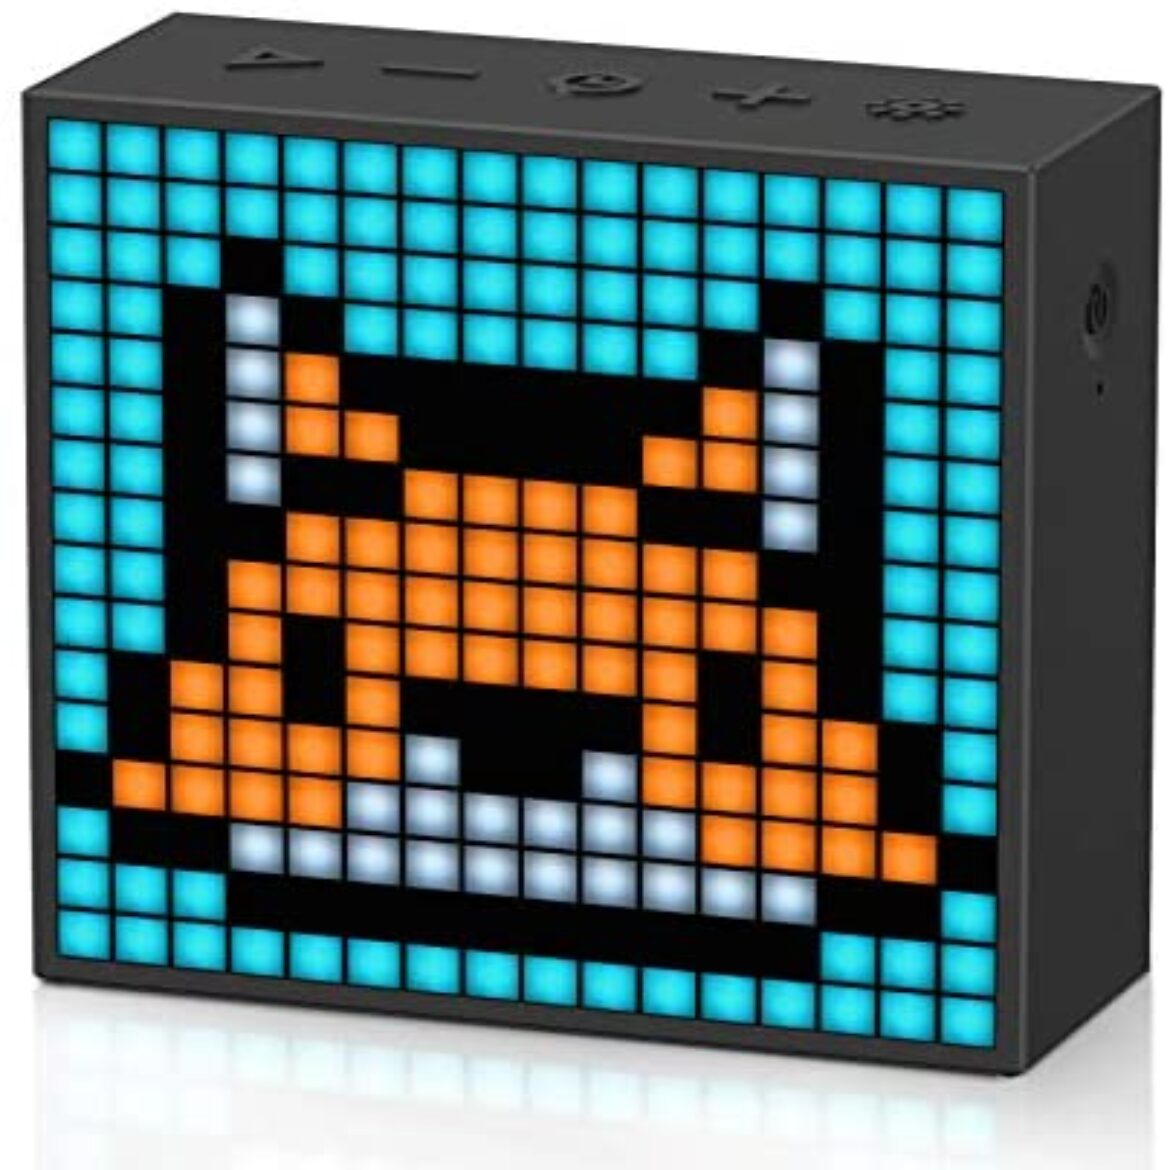 Divoom Timebox evo Pixel Artwork LED Bluetooth Speaker App Control, Trim Transportable Wi-fi Speaker with Great Bass, Supports Anxiety Clock Radio, Microphone (Shadowy)